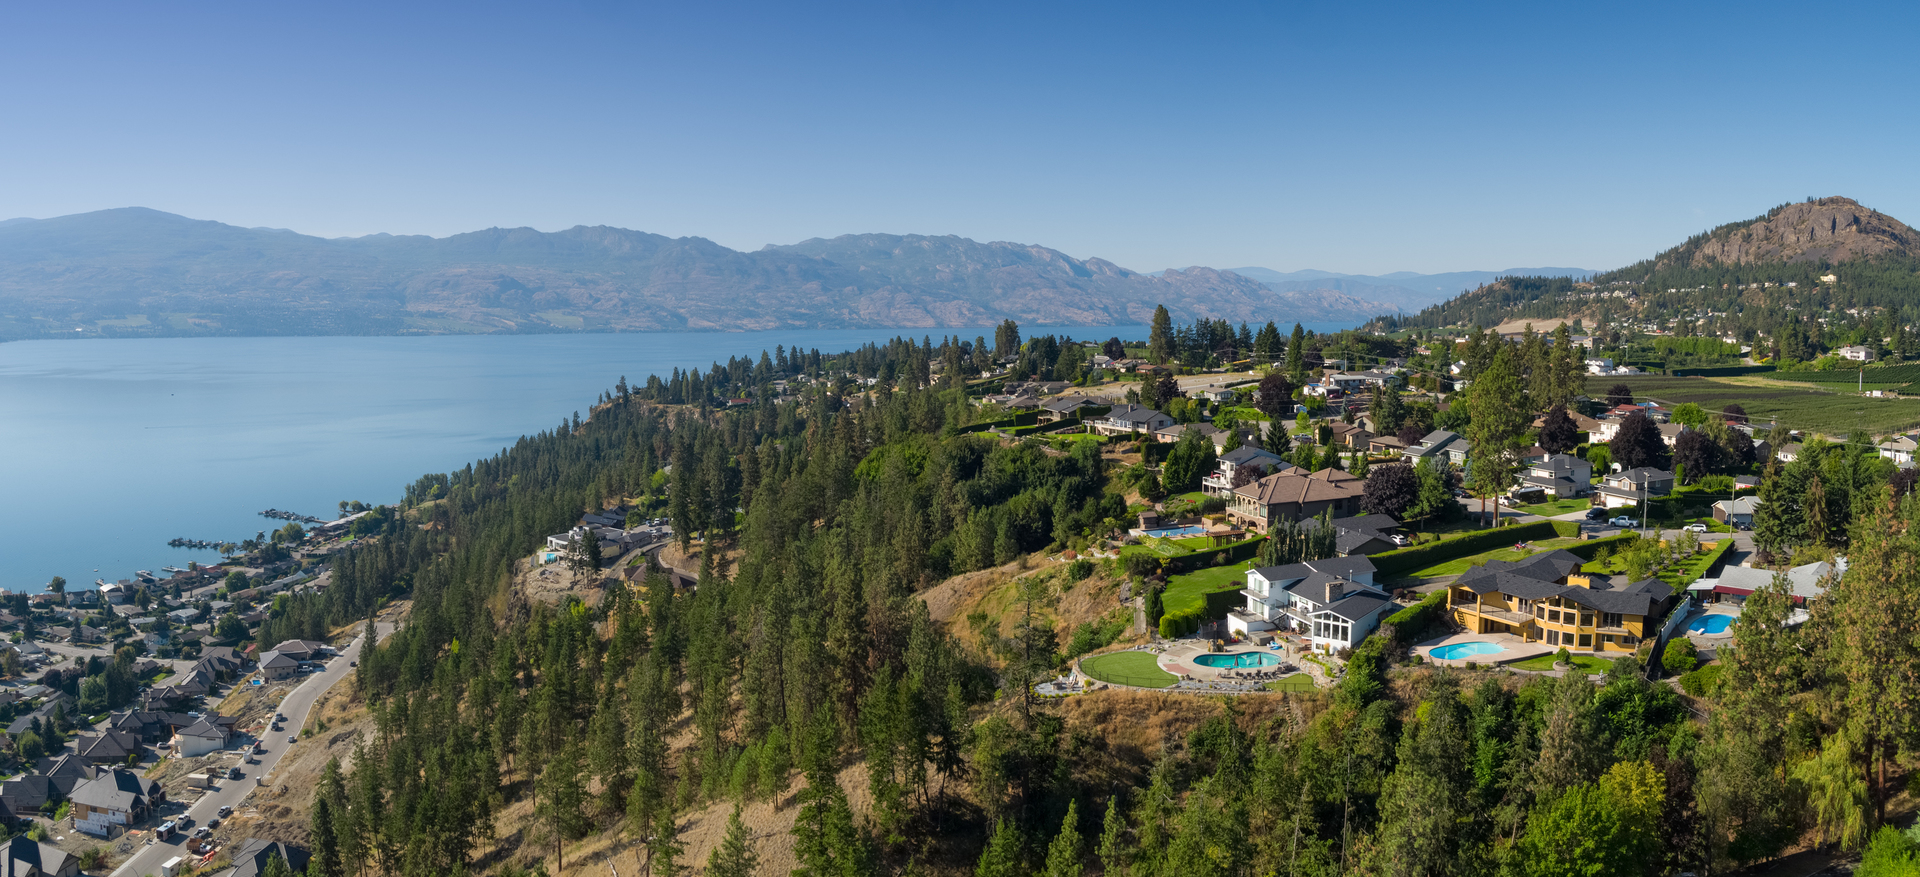 dji_0047-pano-edit at 2511 Hillsborough Road, West Kelowna, Central Okanagan